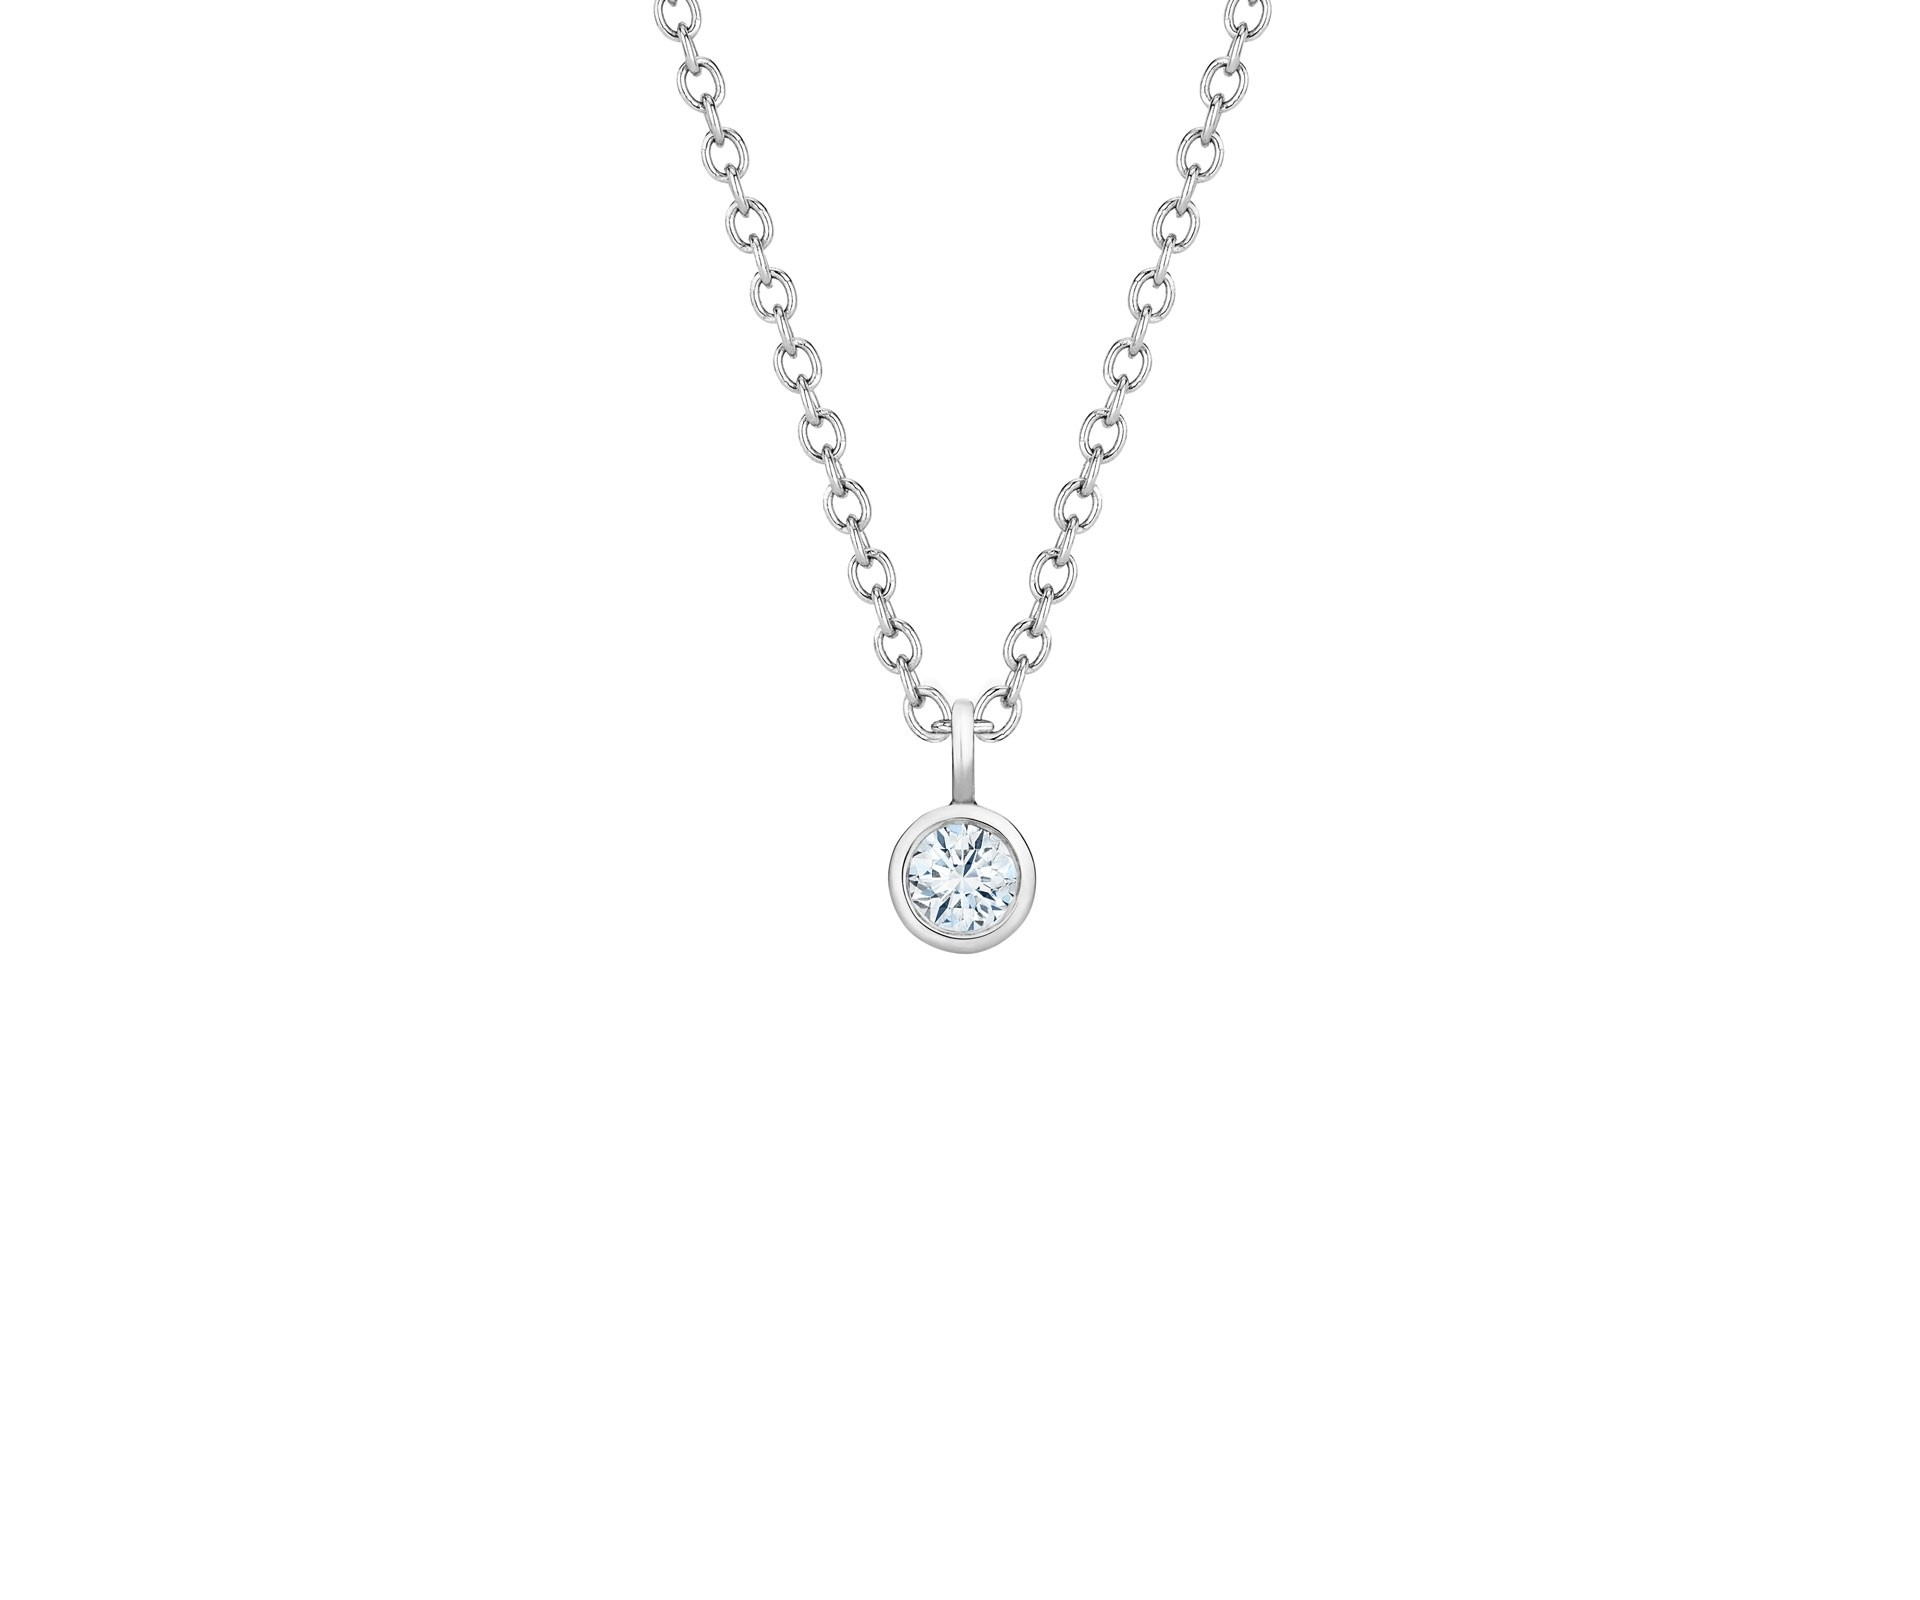 My First De Beers White Gold One Diamond Pendant With Regard To Latest Diamond Necklaces In Platinum (Gallery 25 of 25)